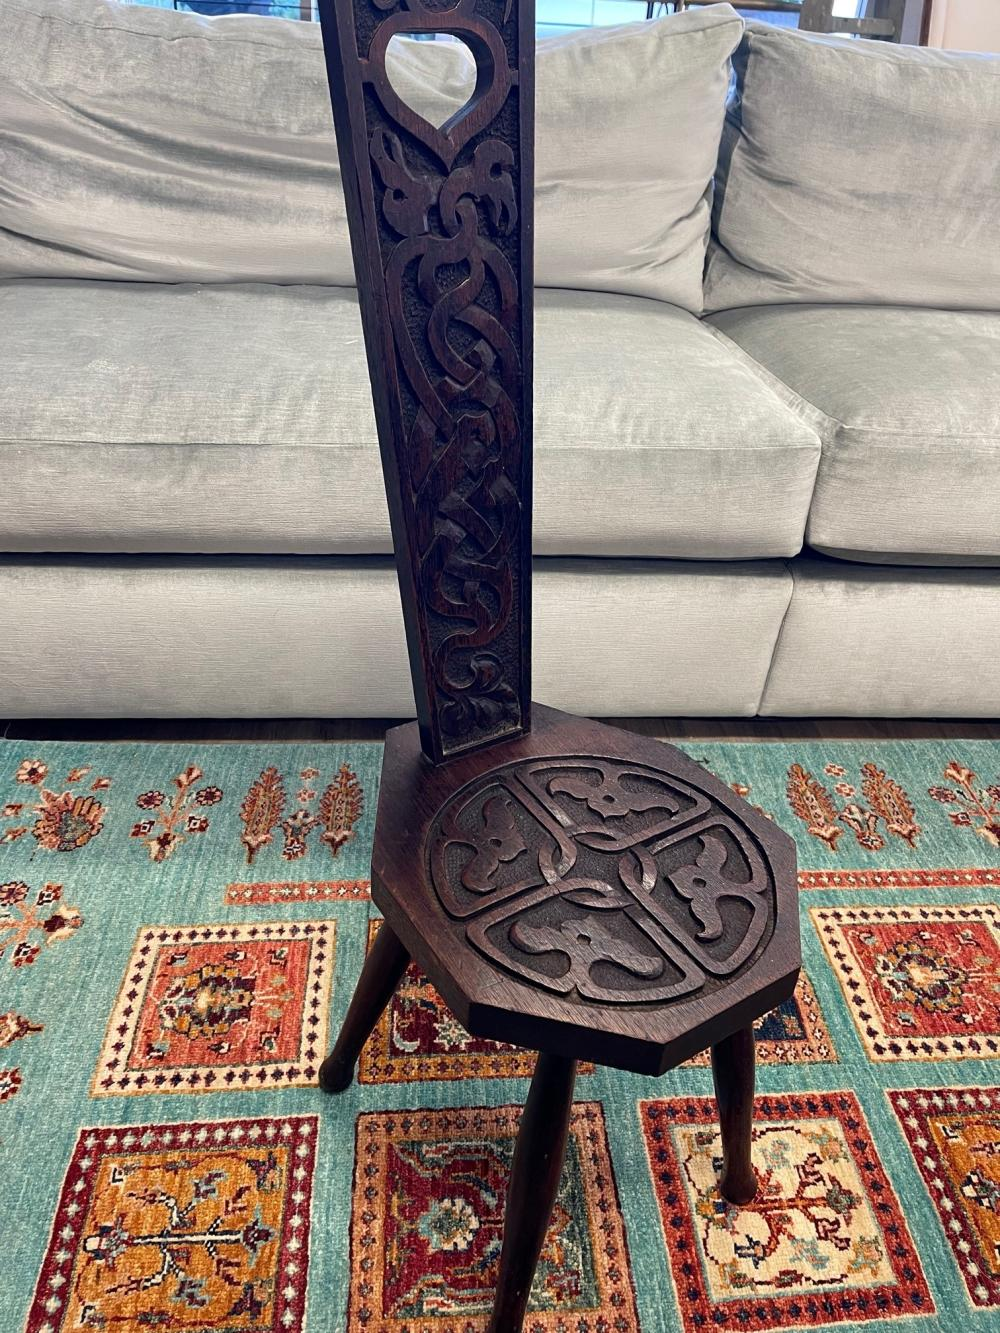 Antique English oak Arts & Crafts spinners chair, carved with Celtic designs